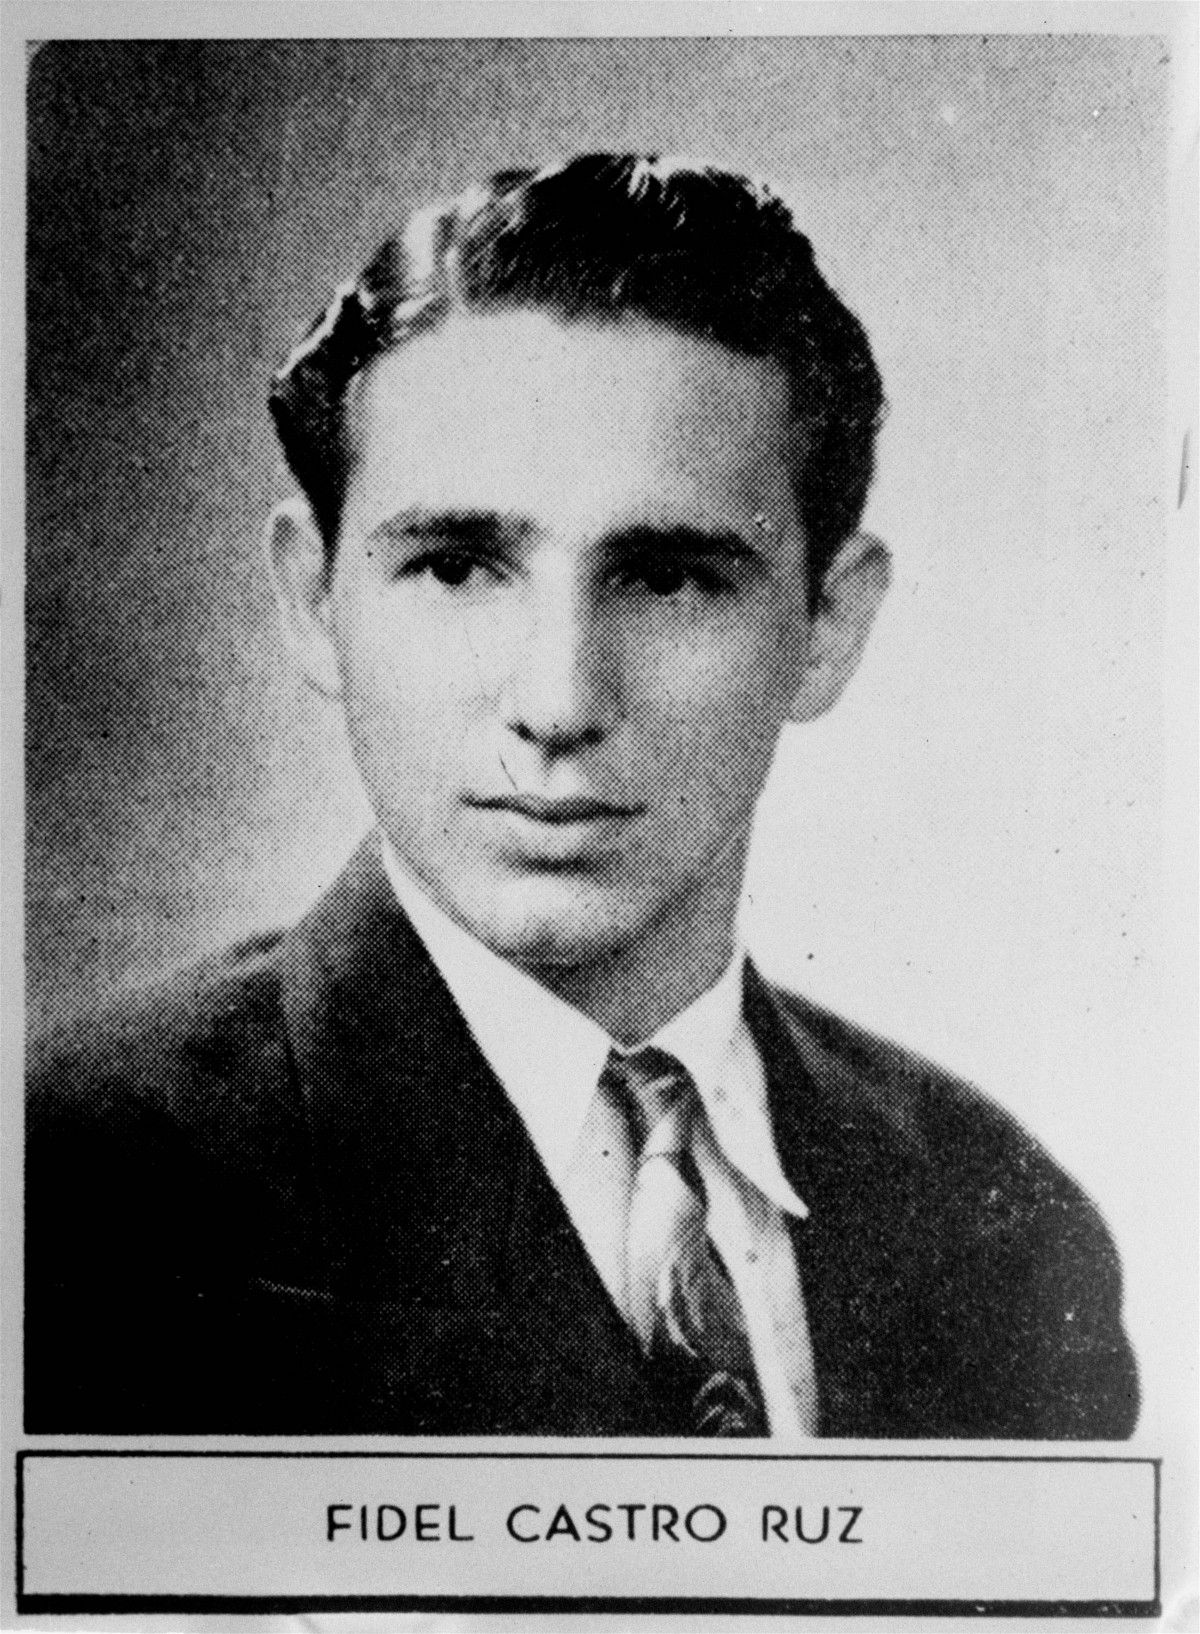 """The caption describing Fidel Castro in his 1945 high school yearbook reads: """"Distinguished student and a fine athlete. Very popular. Will study law and we have no doubt he will have a brilliant future."""""""